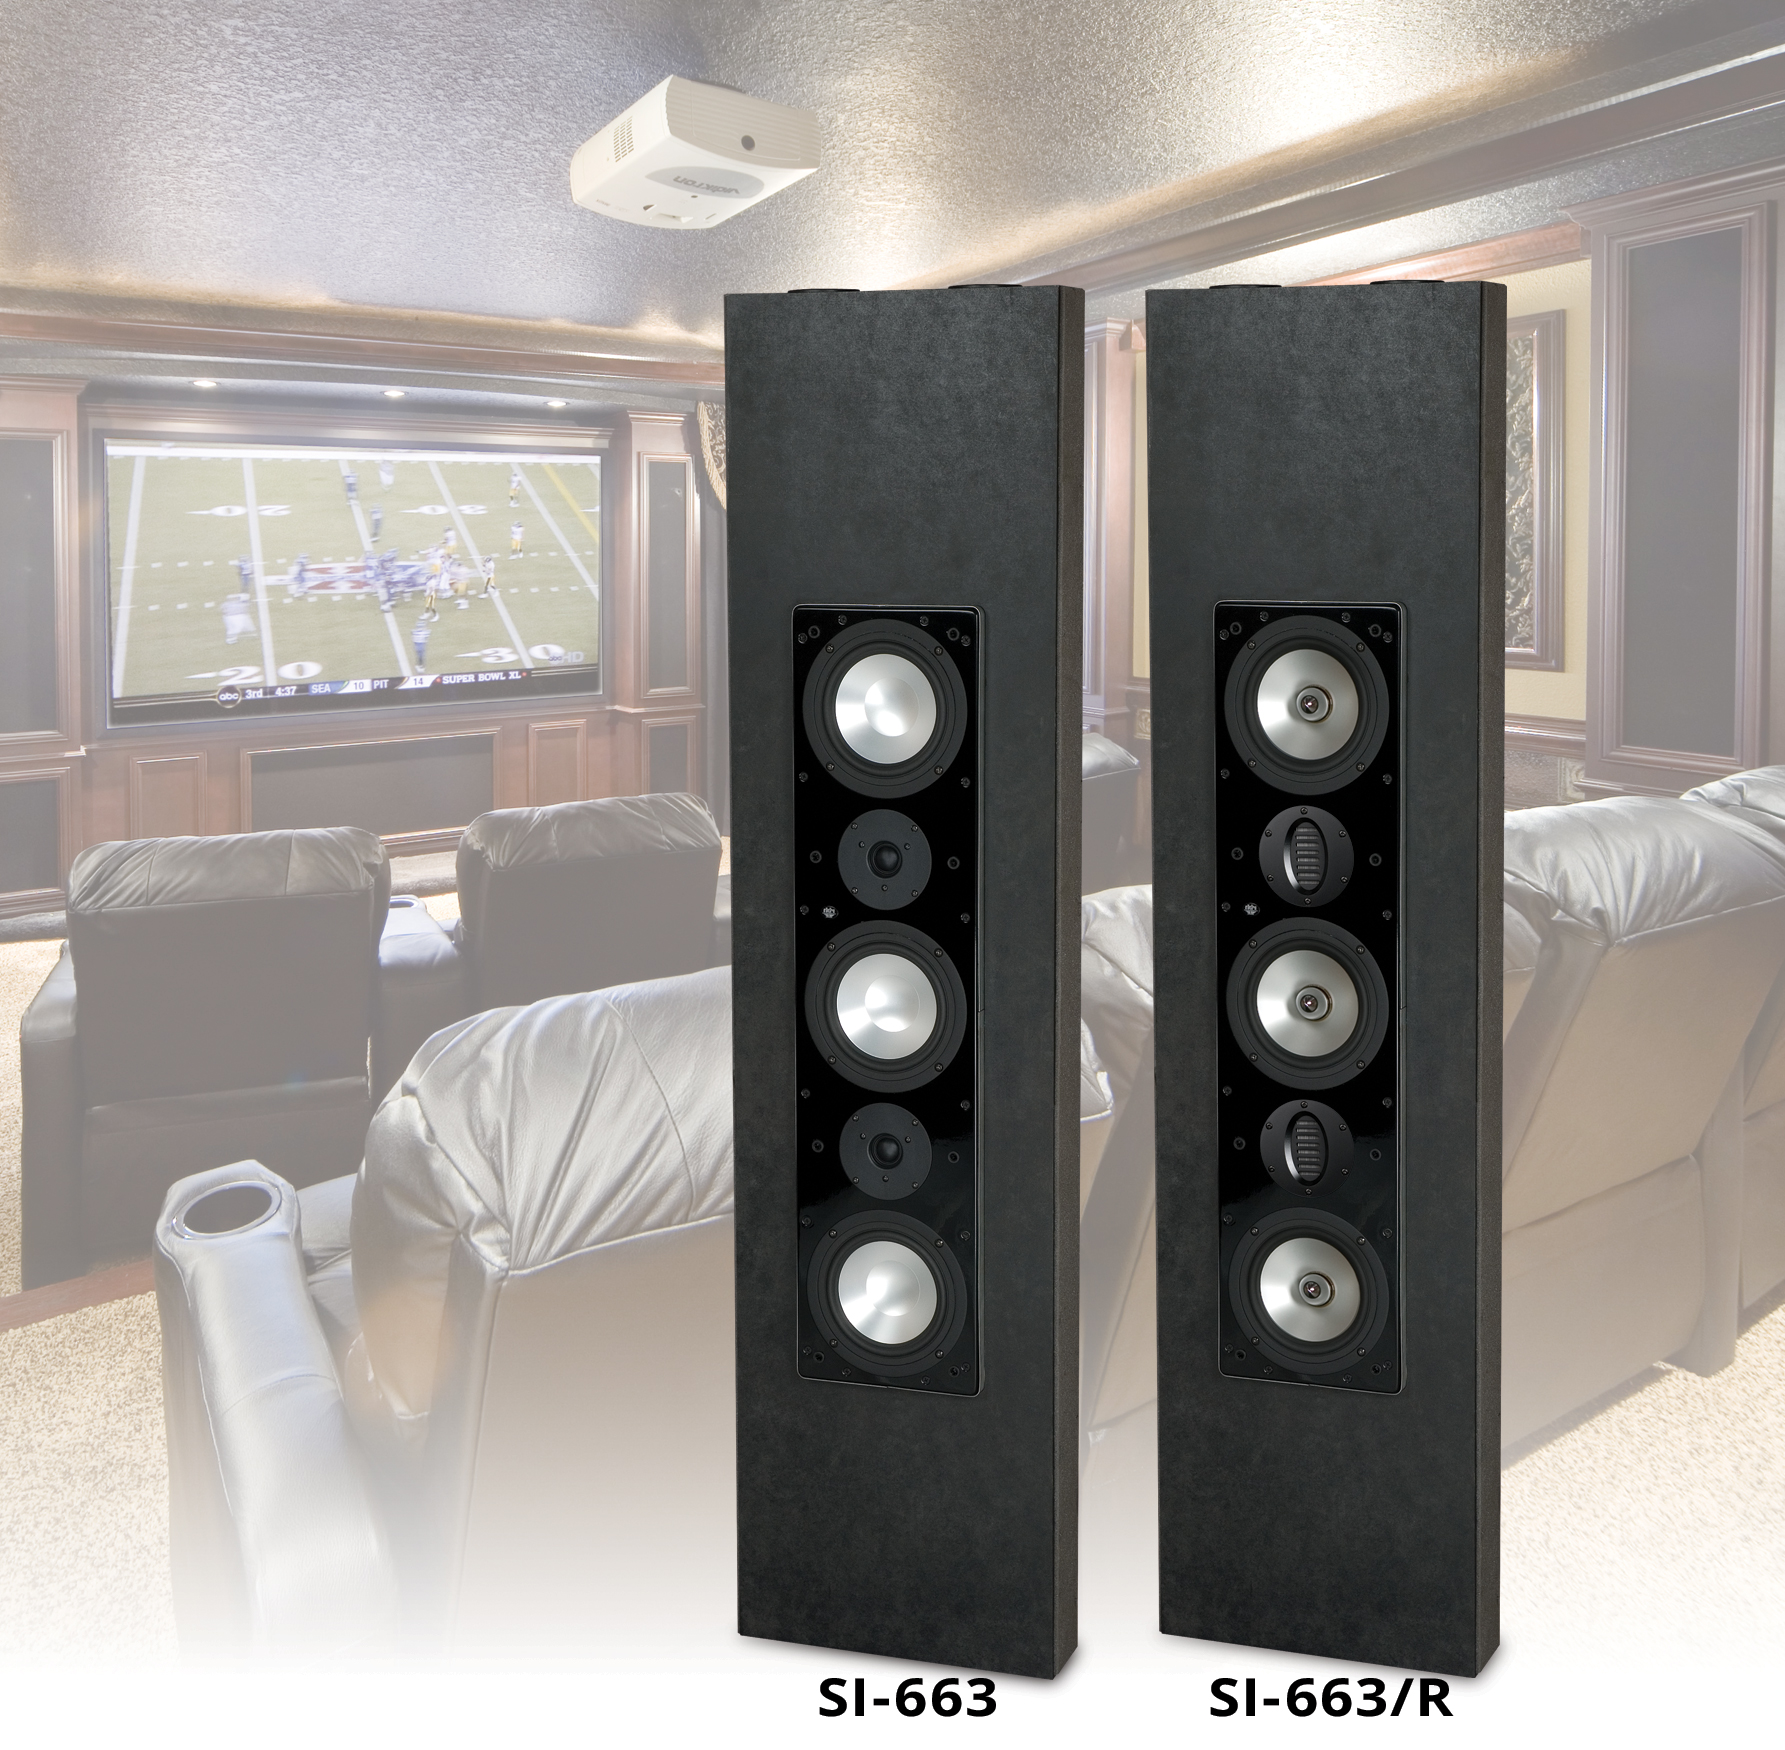 SI-663 and SI-663/R In-wall LCR Speaker